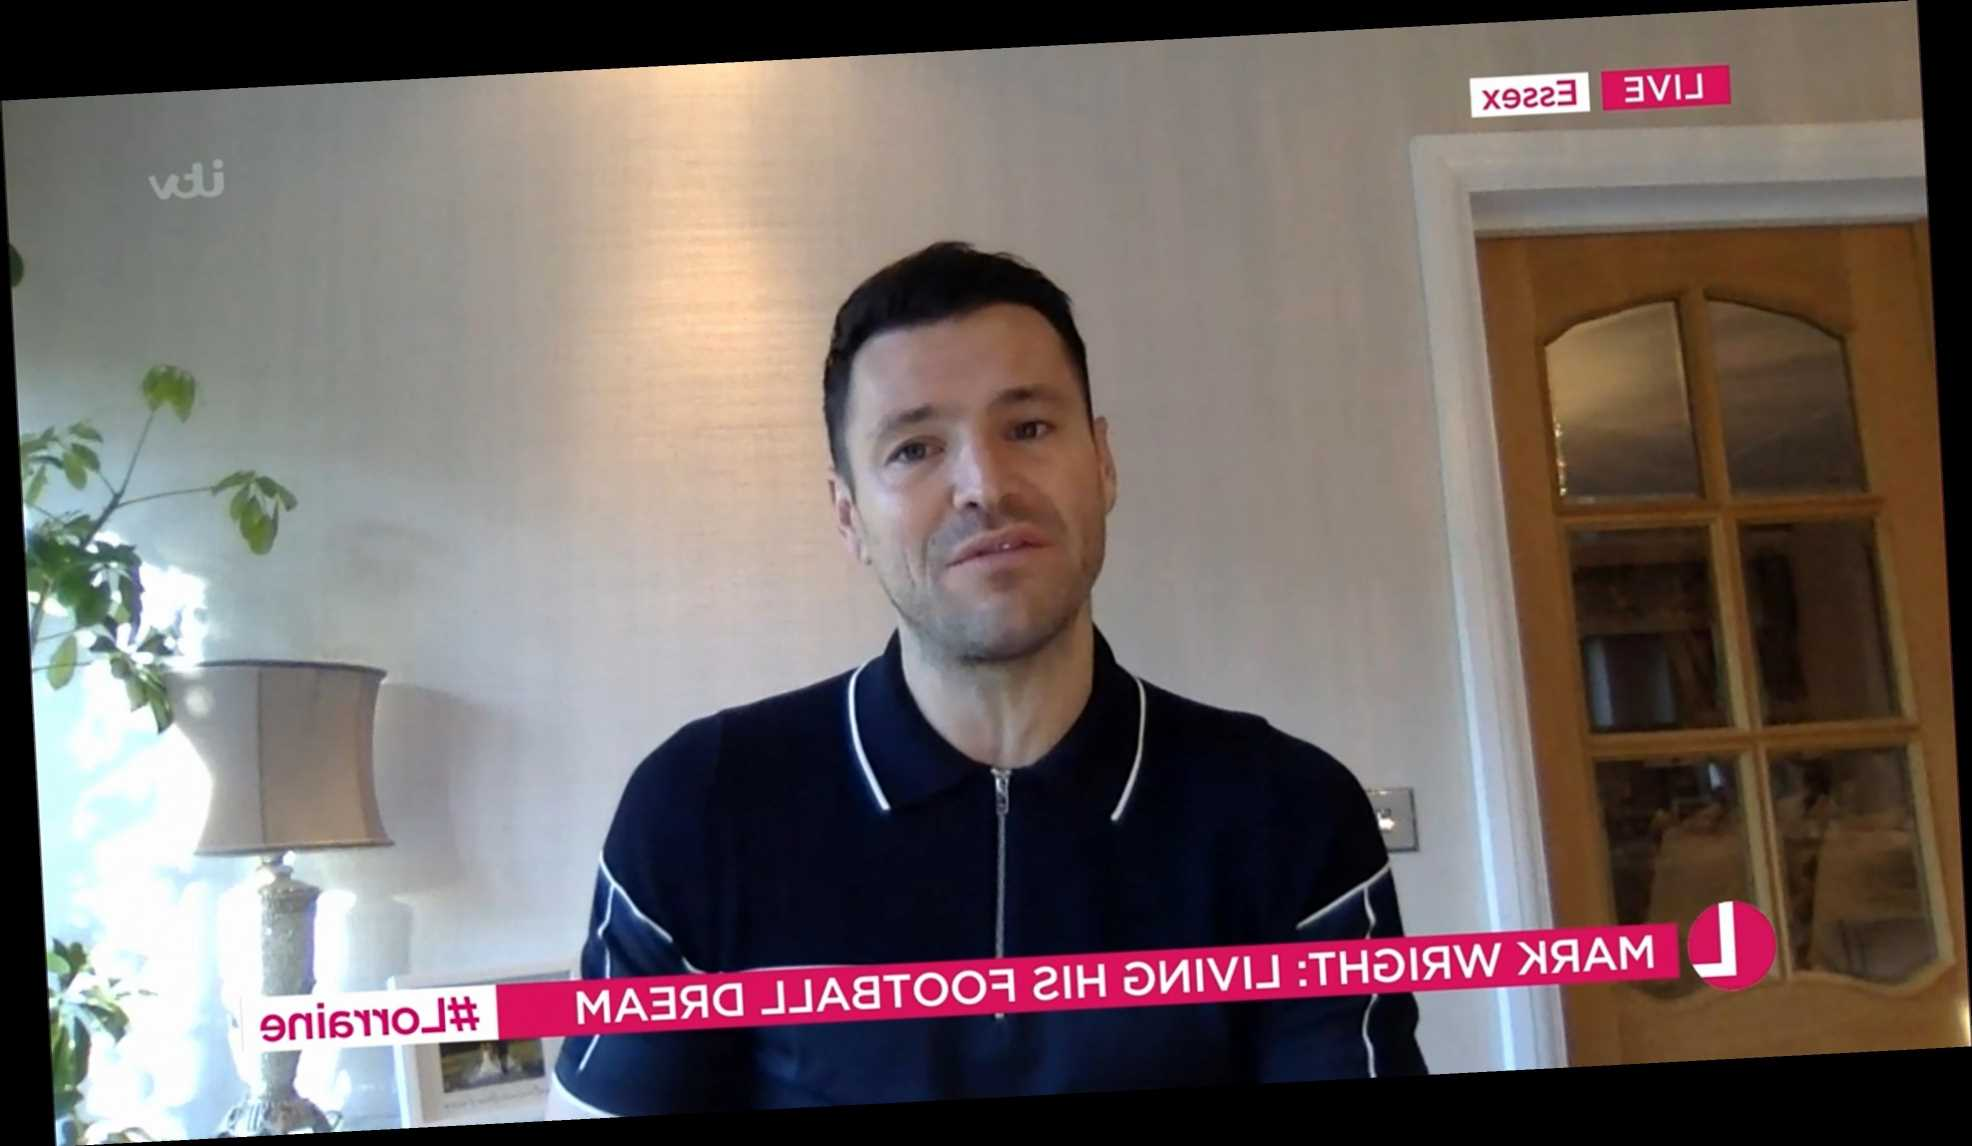 Mark Wright pays tribute to former Towie co-star Mick Norcross on Lorraine after he's found dead in his home